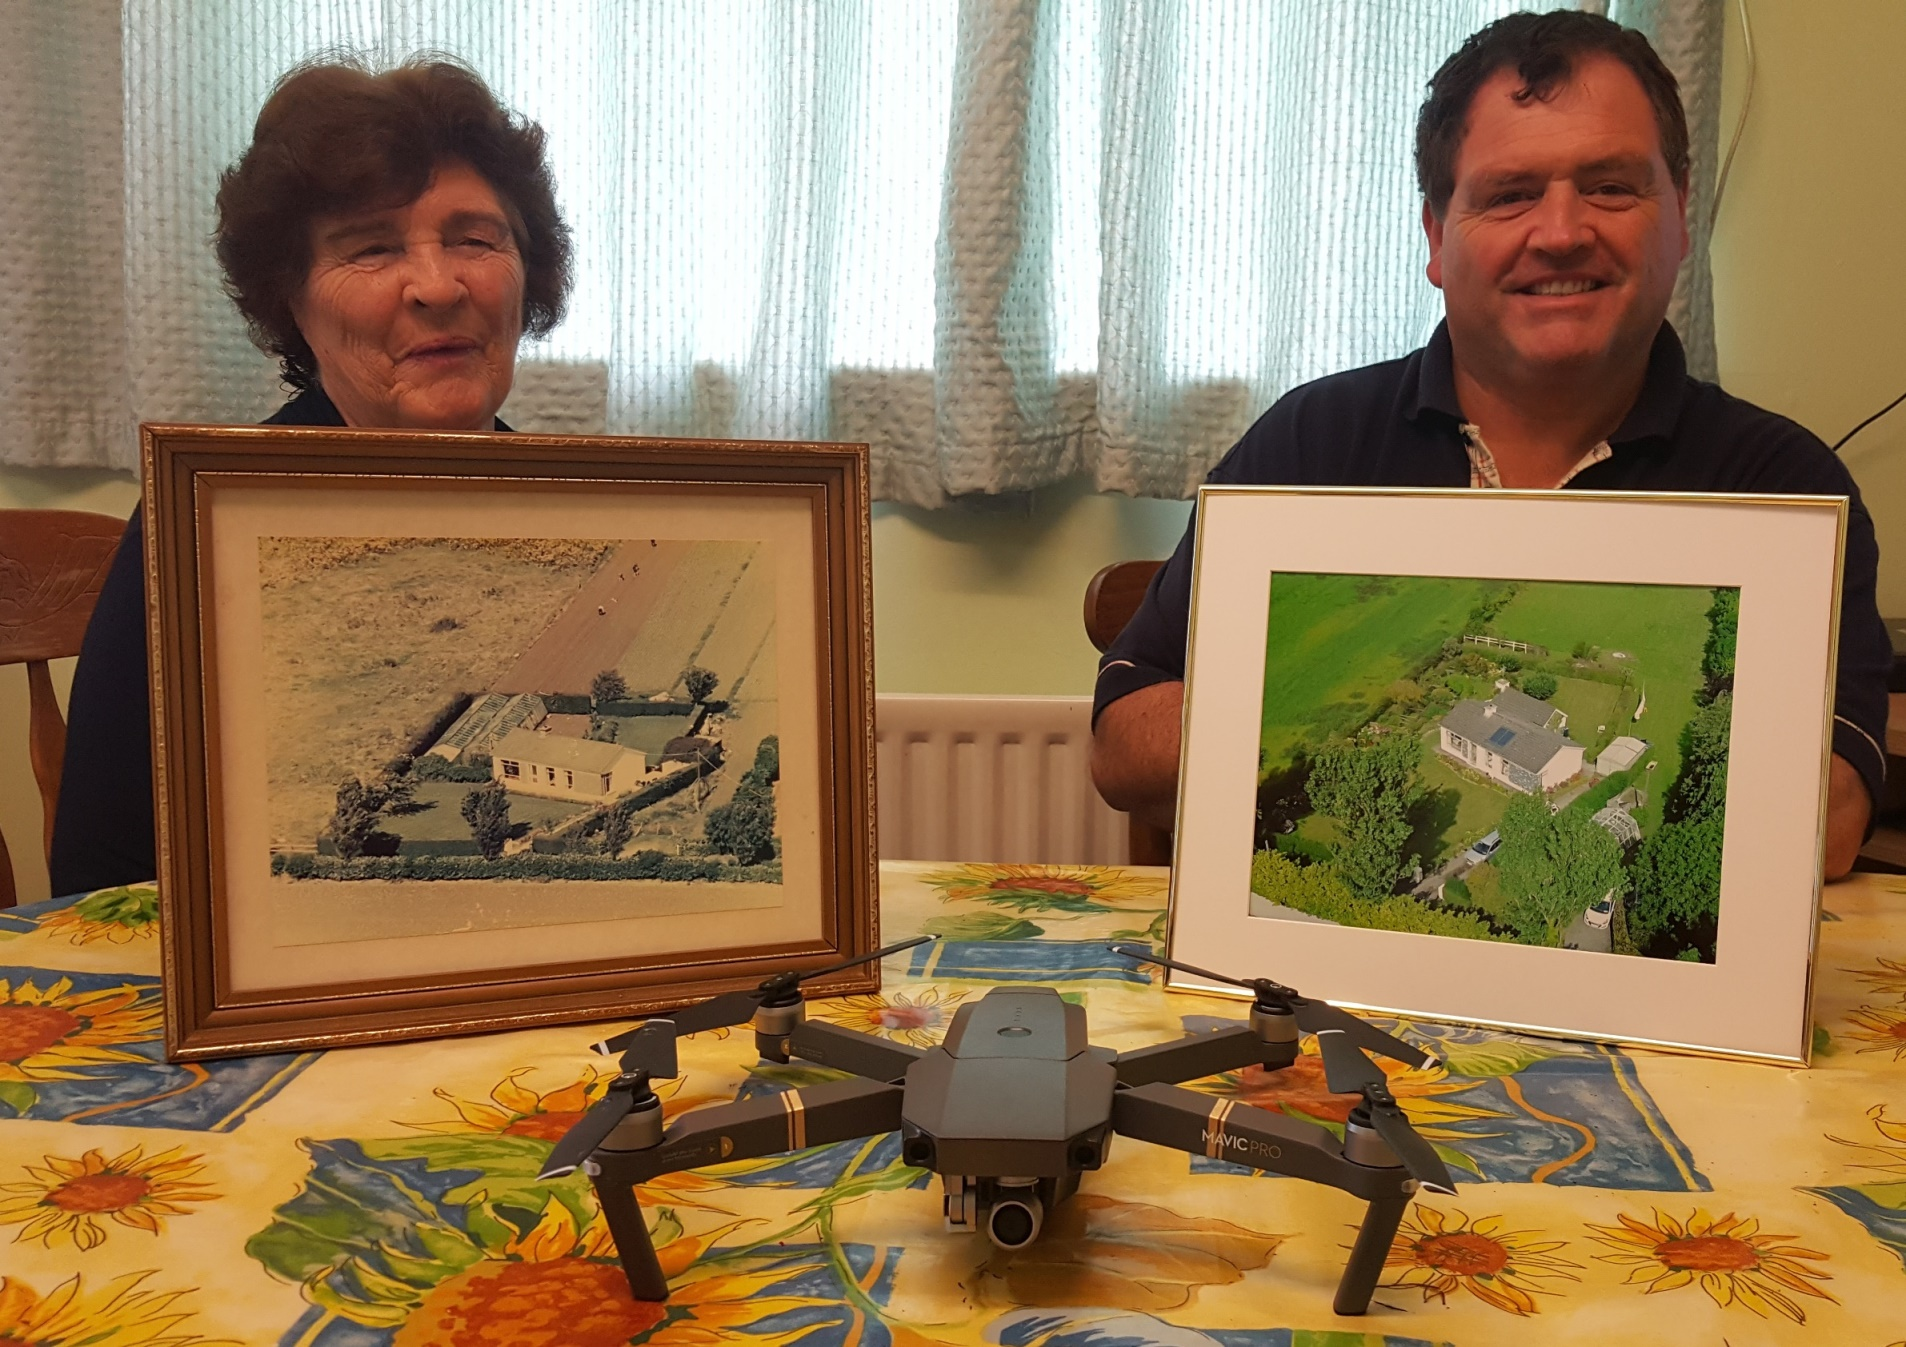 Mum With Brother And DJI Mavic Pro